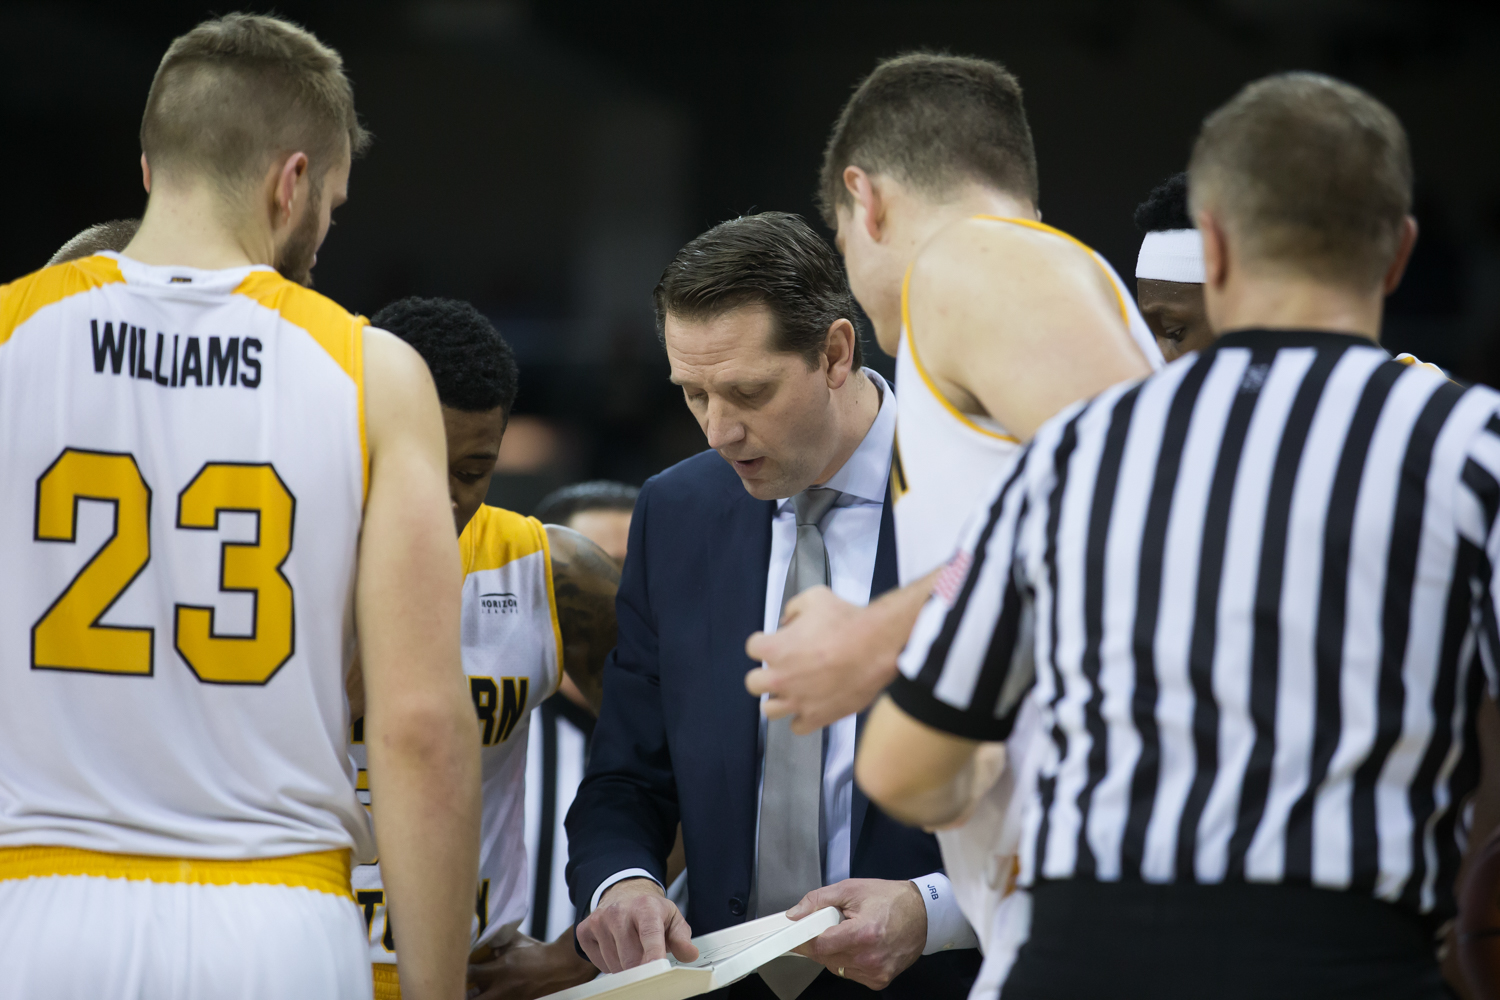 Head Coach John Brannen goes over a play during a timeout in the game against Milwaukee.